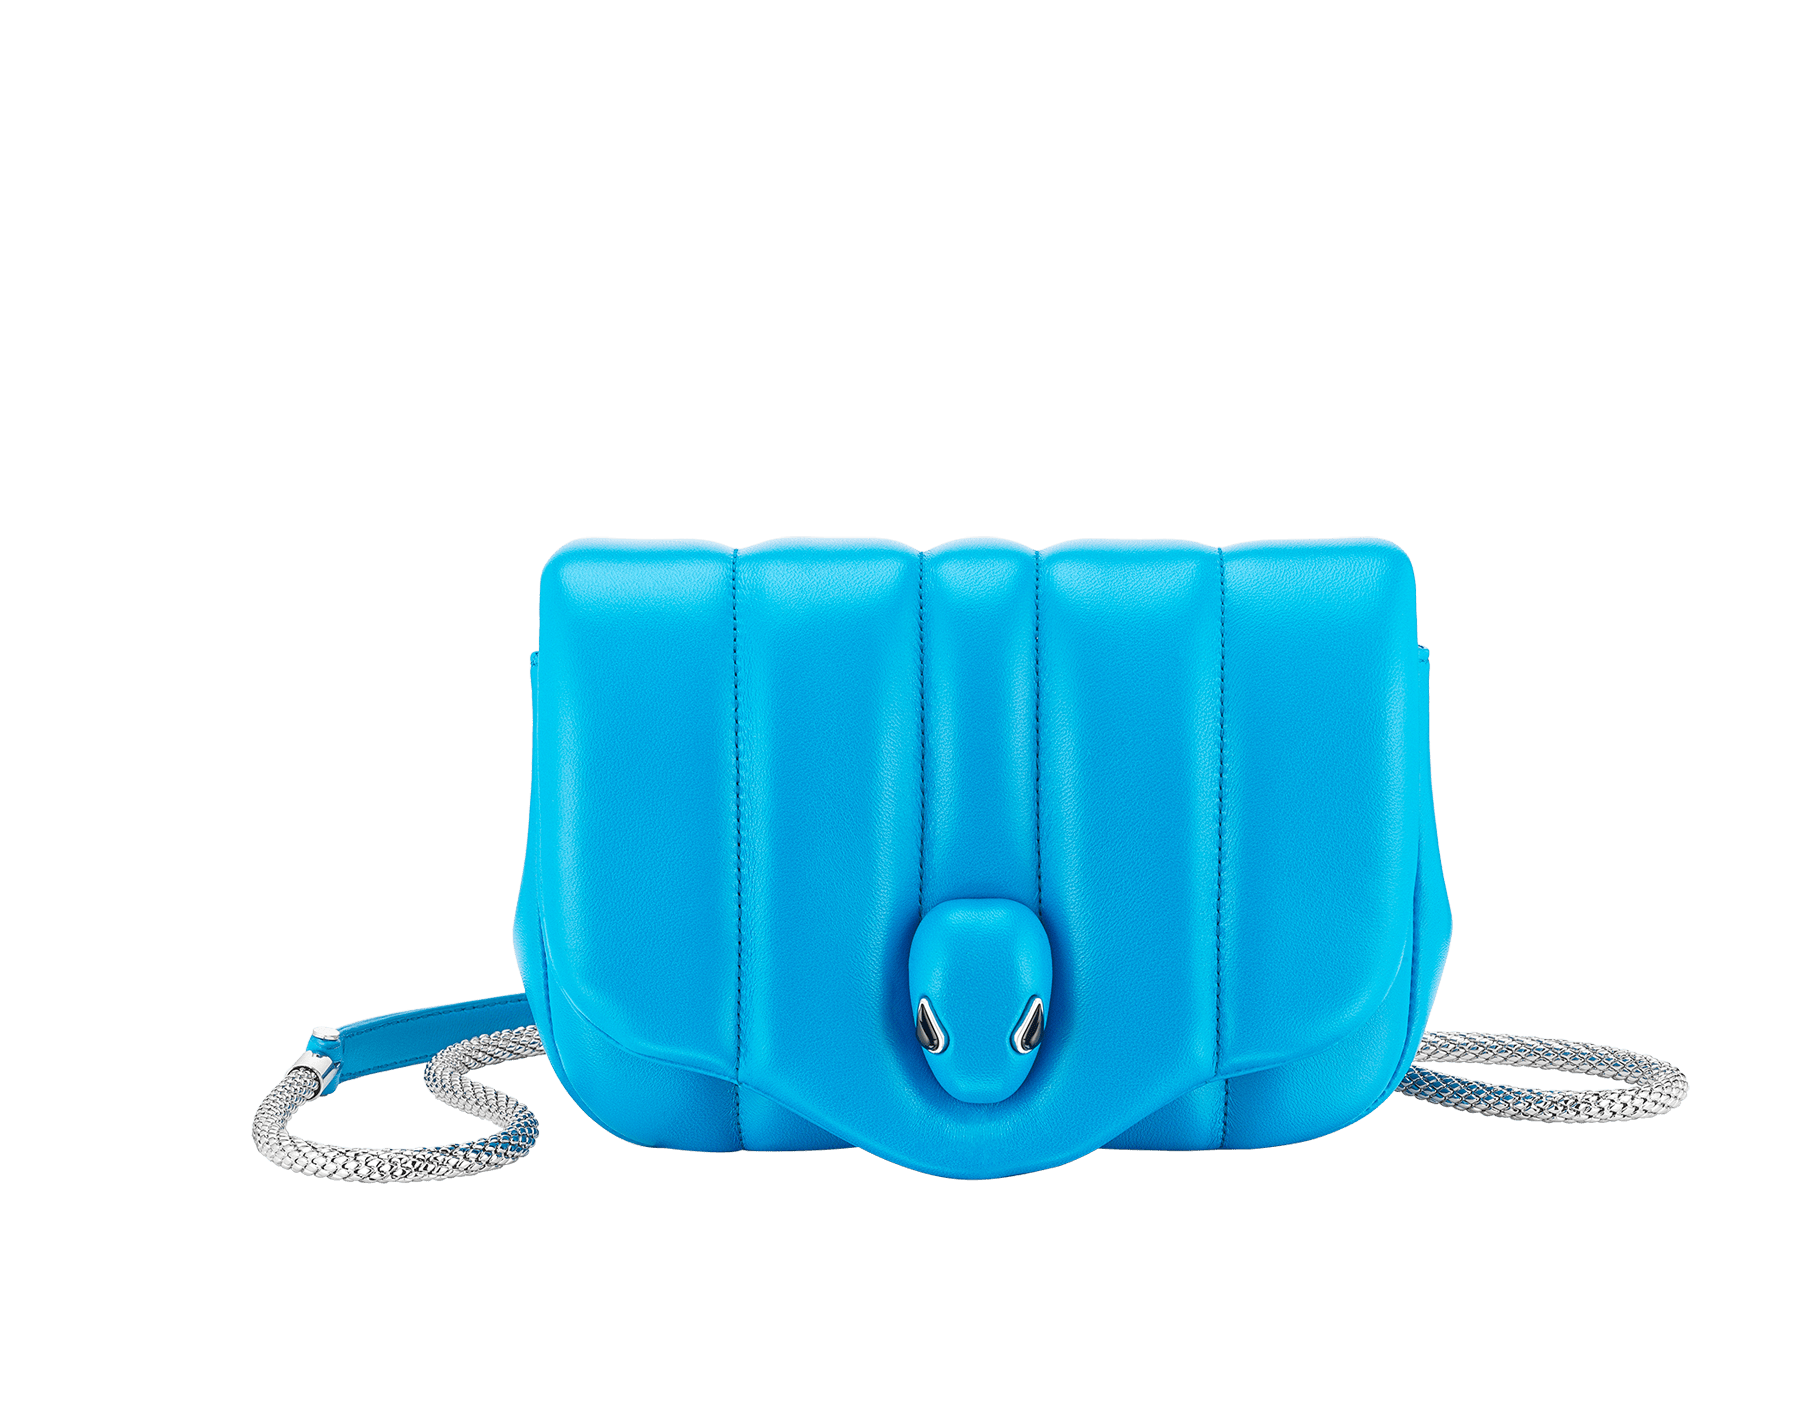 """Ambush x Bvlgari"" belt bag in bright green nappa leather. New Serpenti head closure in palladium plated brass dressed with bright green nappa leather, finished with seductive black onyx eyes. Limited edition. YA-1059 image 1"